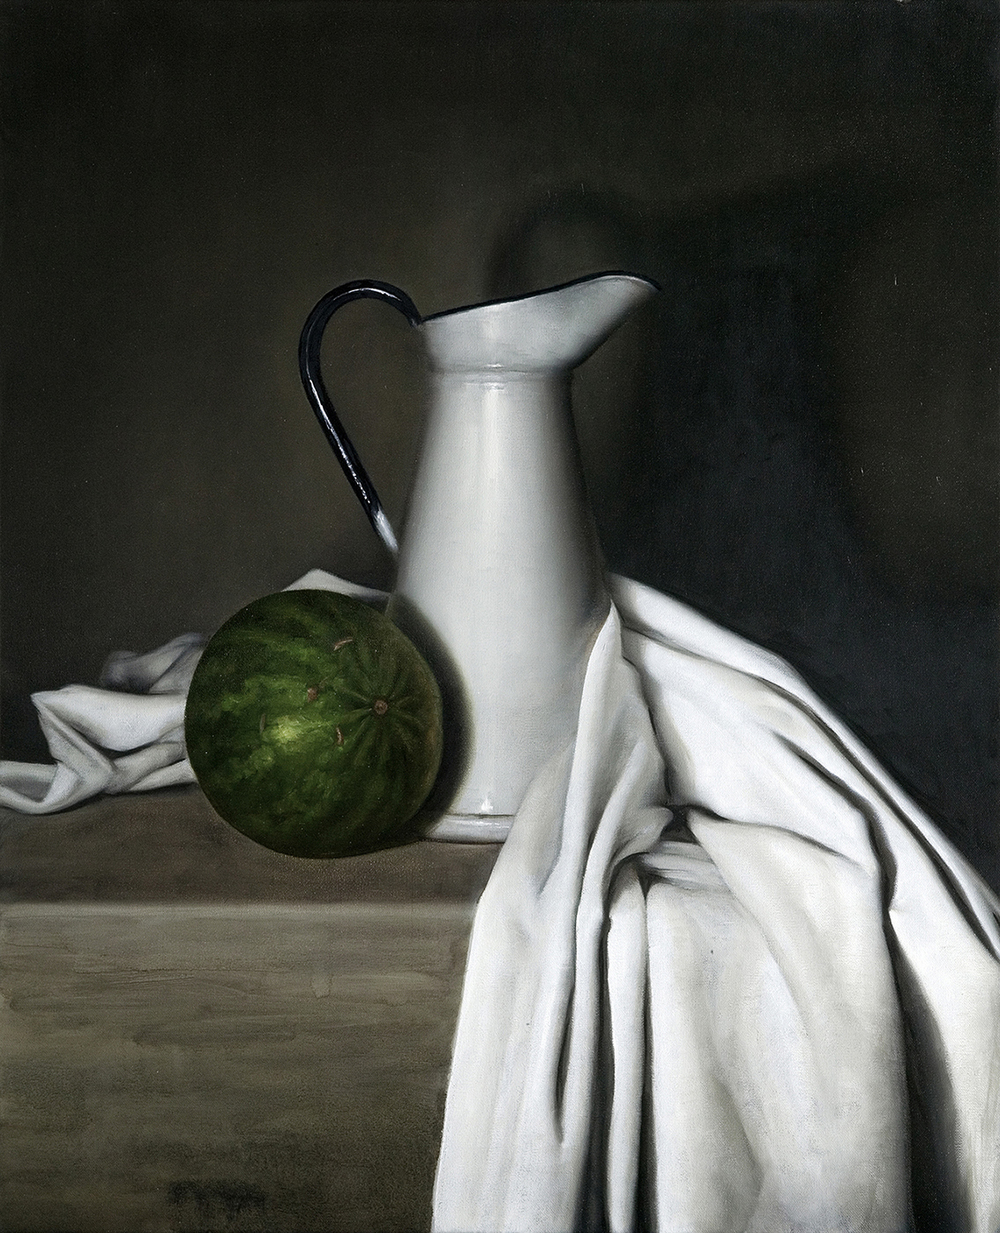 pitcher & melon    2014    oil on canvas    65 x 75 cm